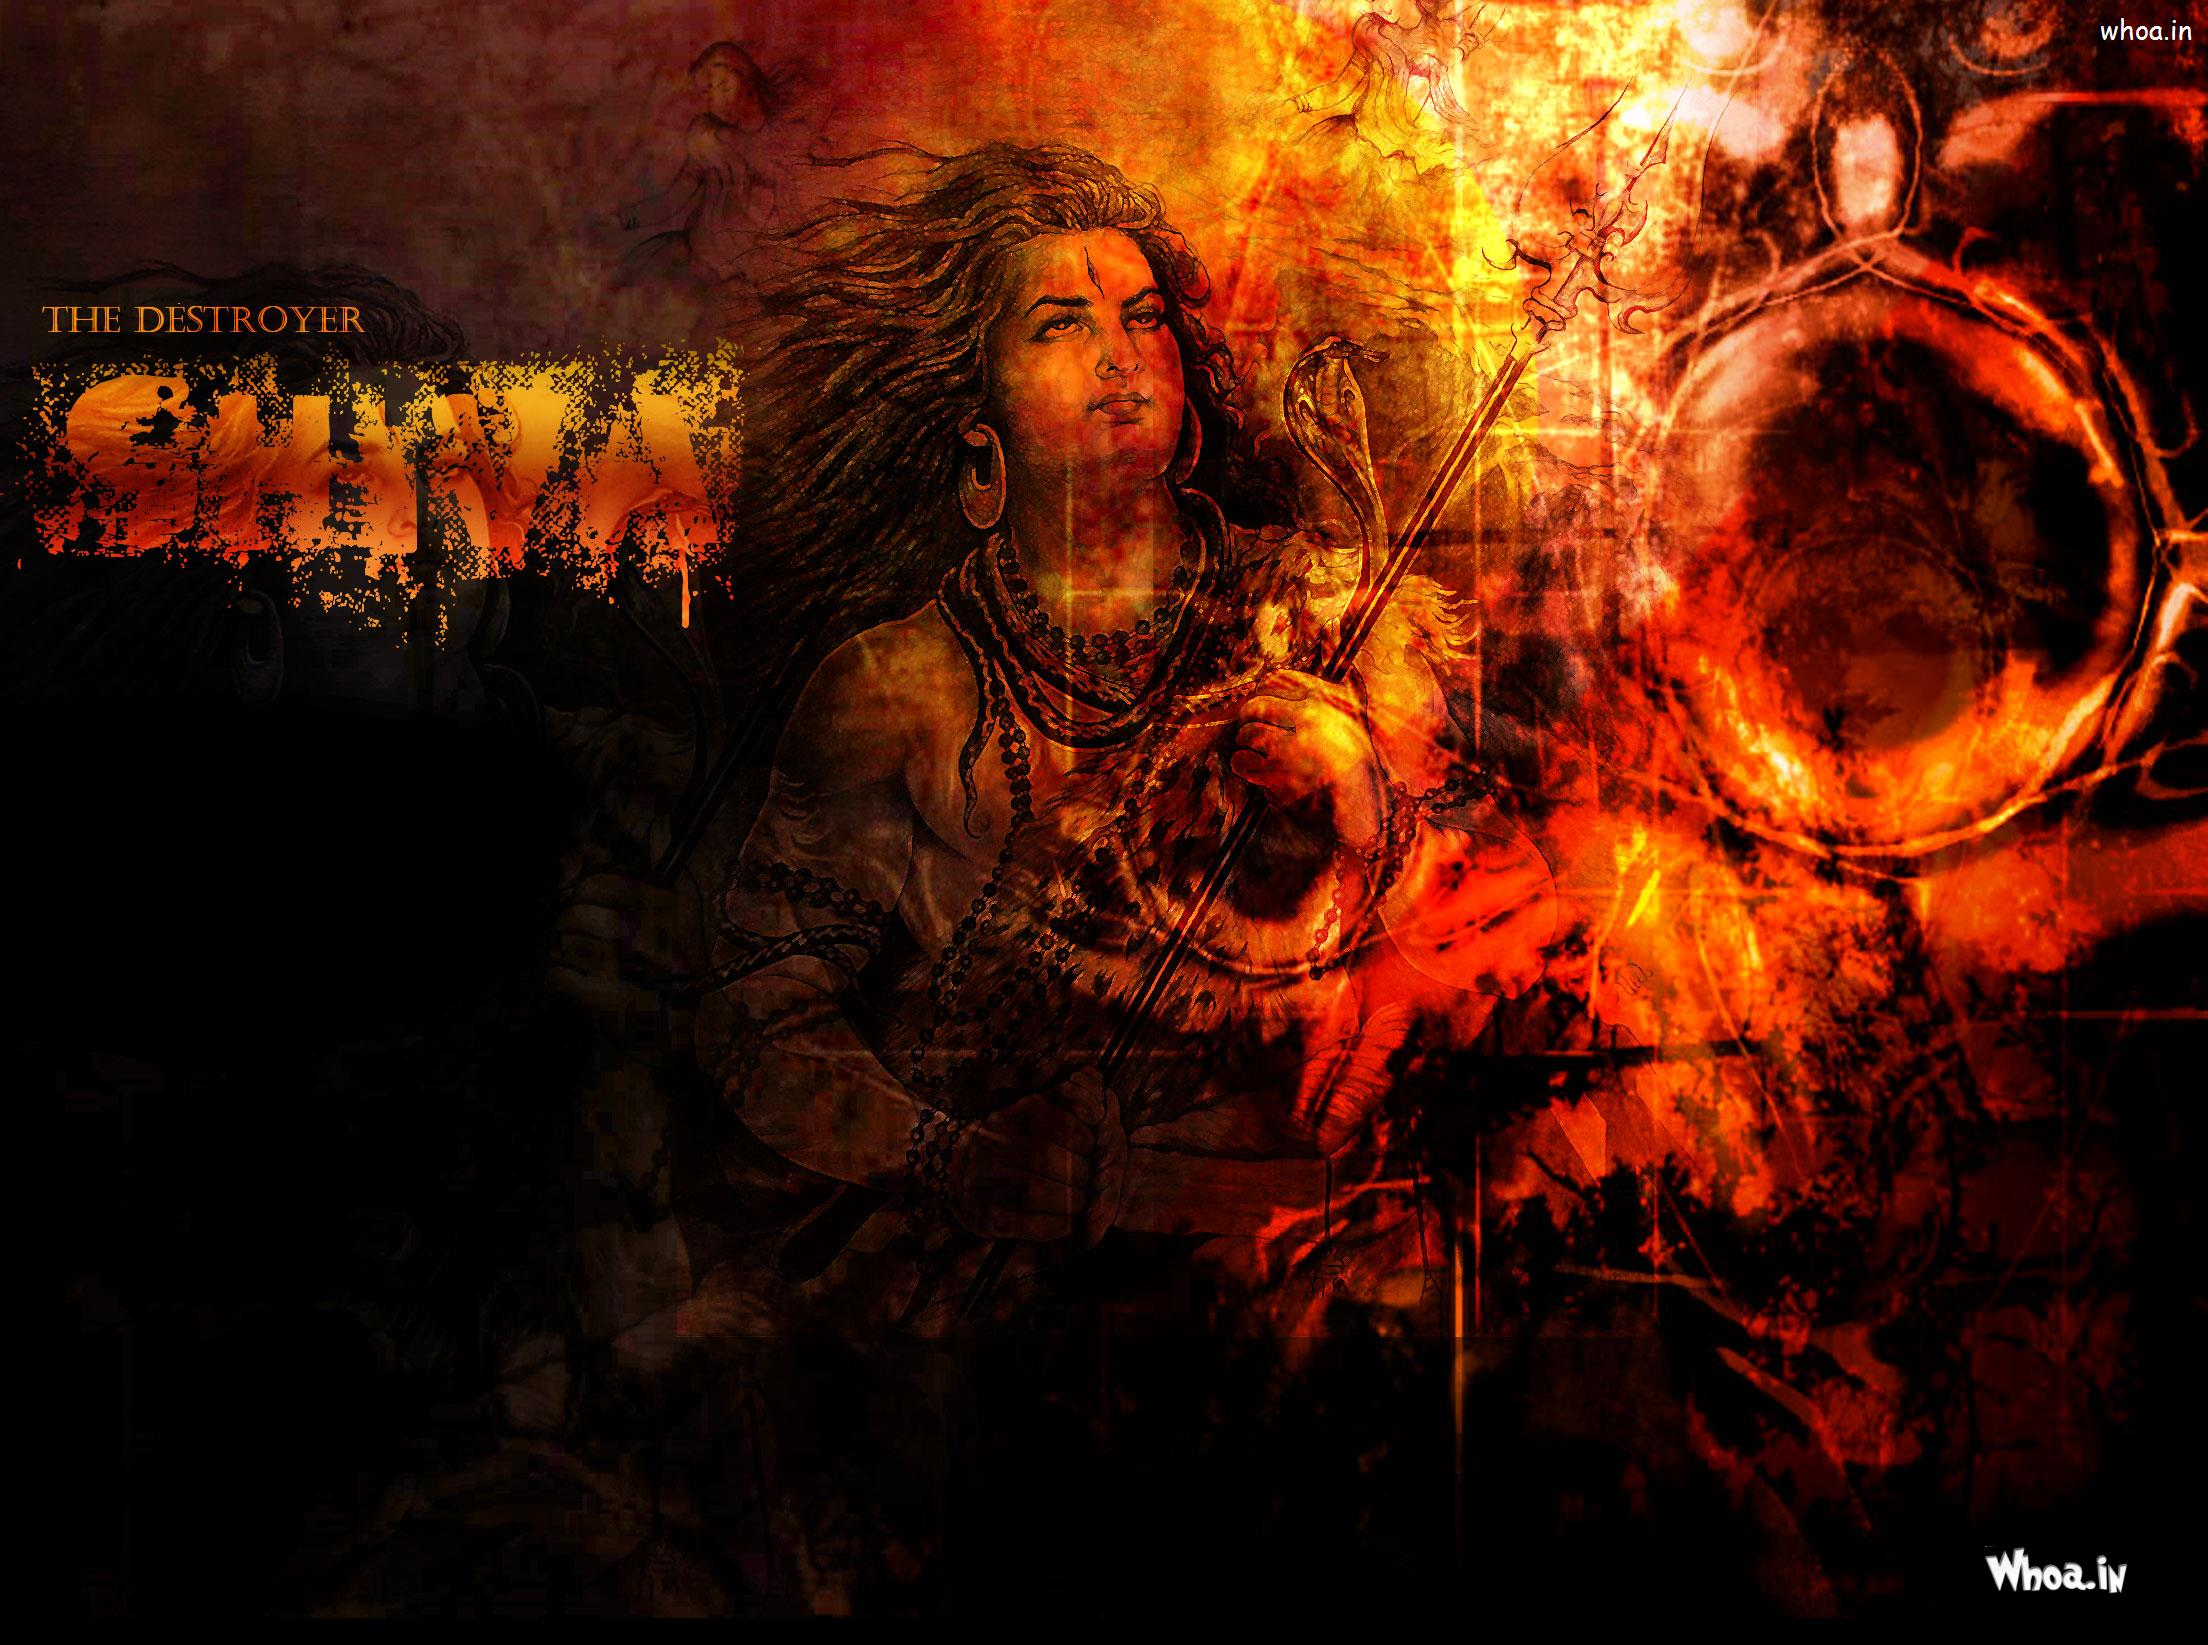 The Destroyer Shiva Hd Wallpaper For Free Download